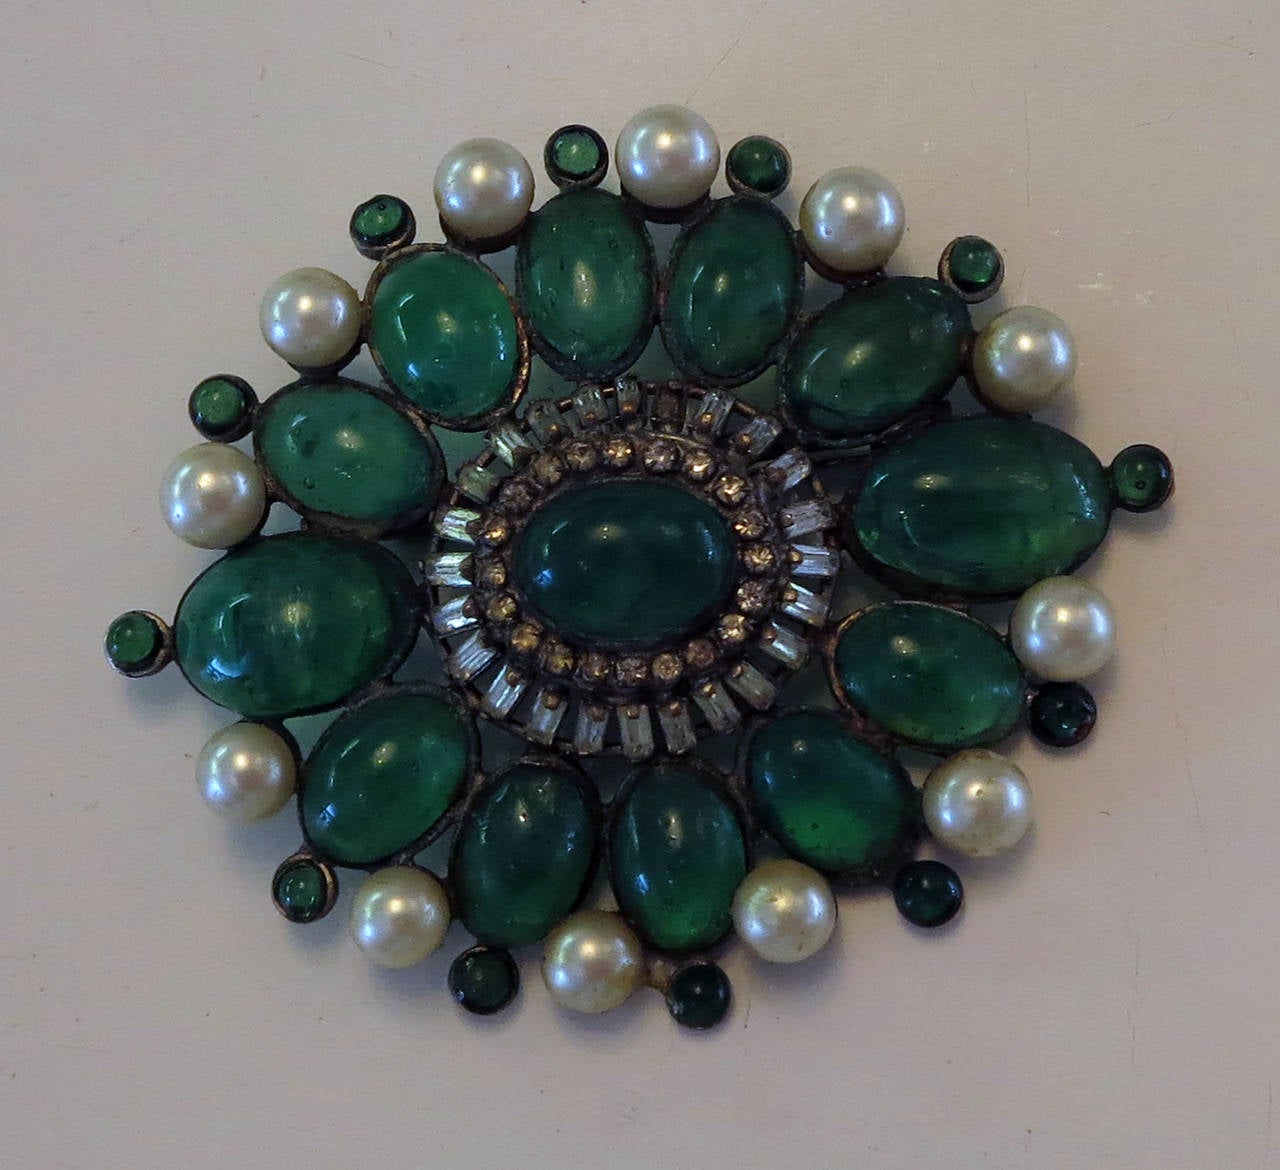 Chanel rare early signed large Gripoix emerald brooch 1950s 9